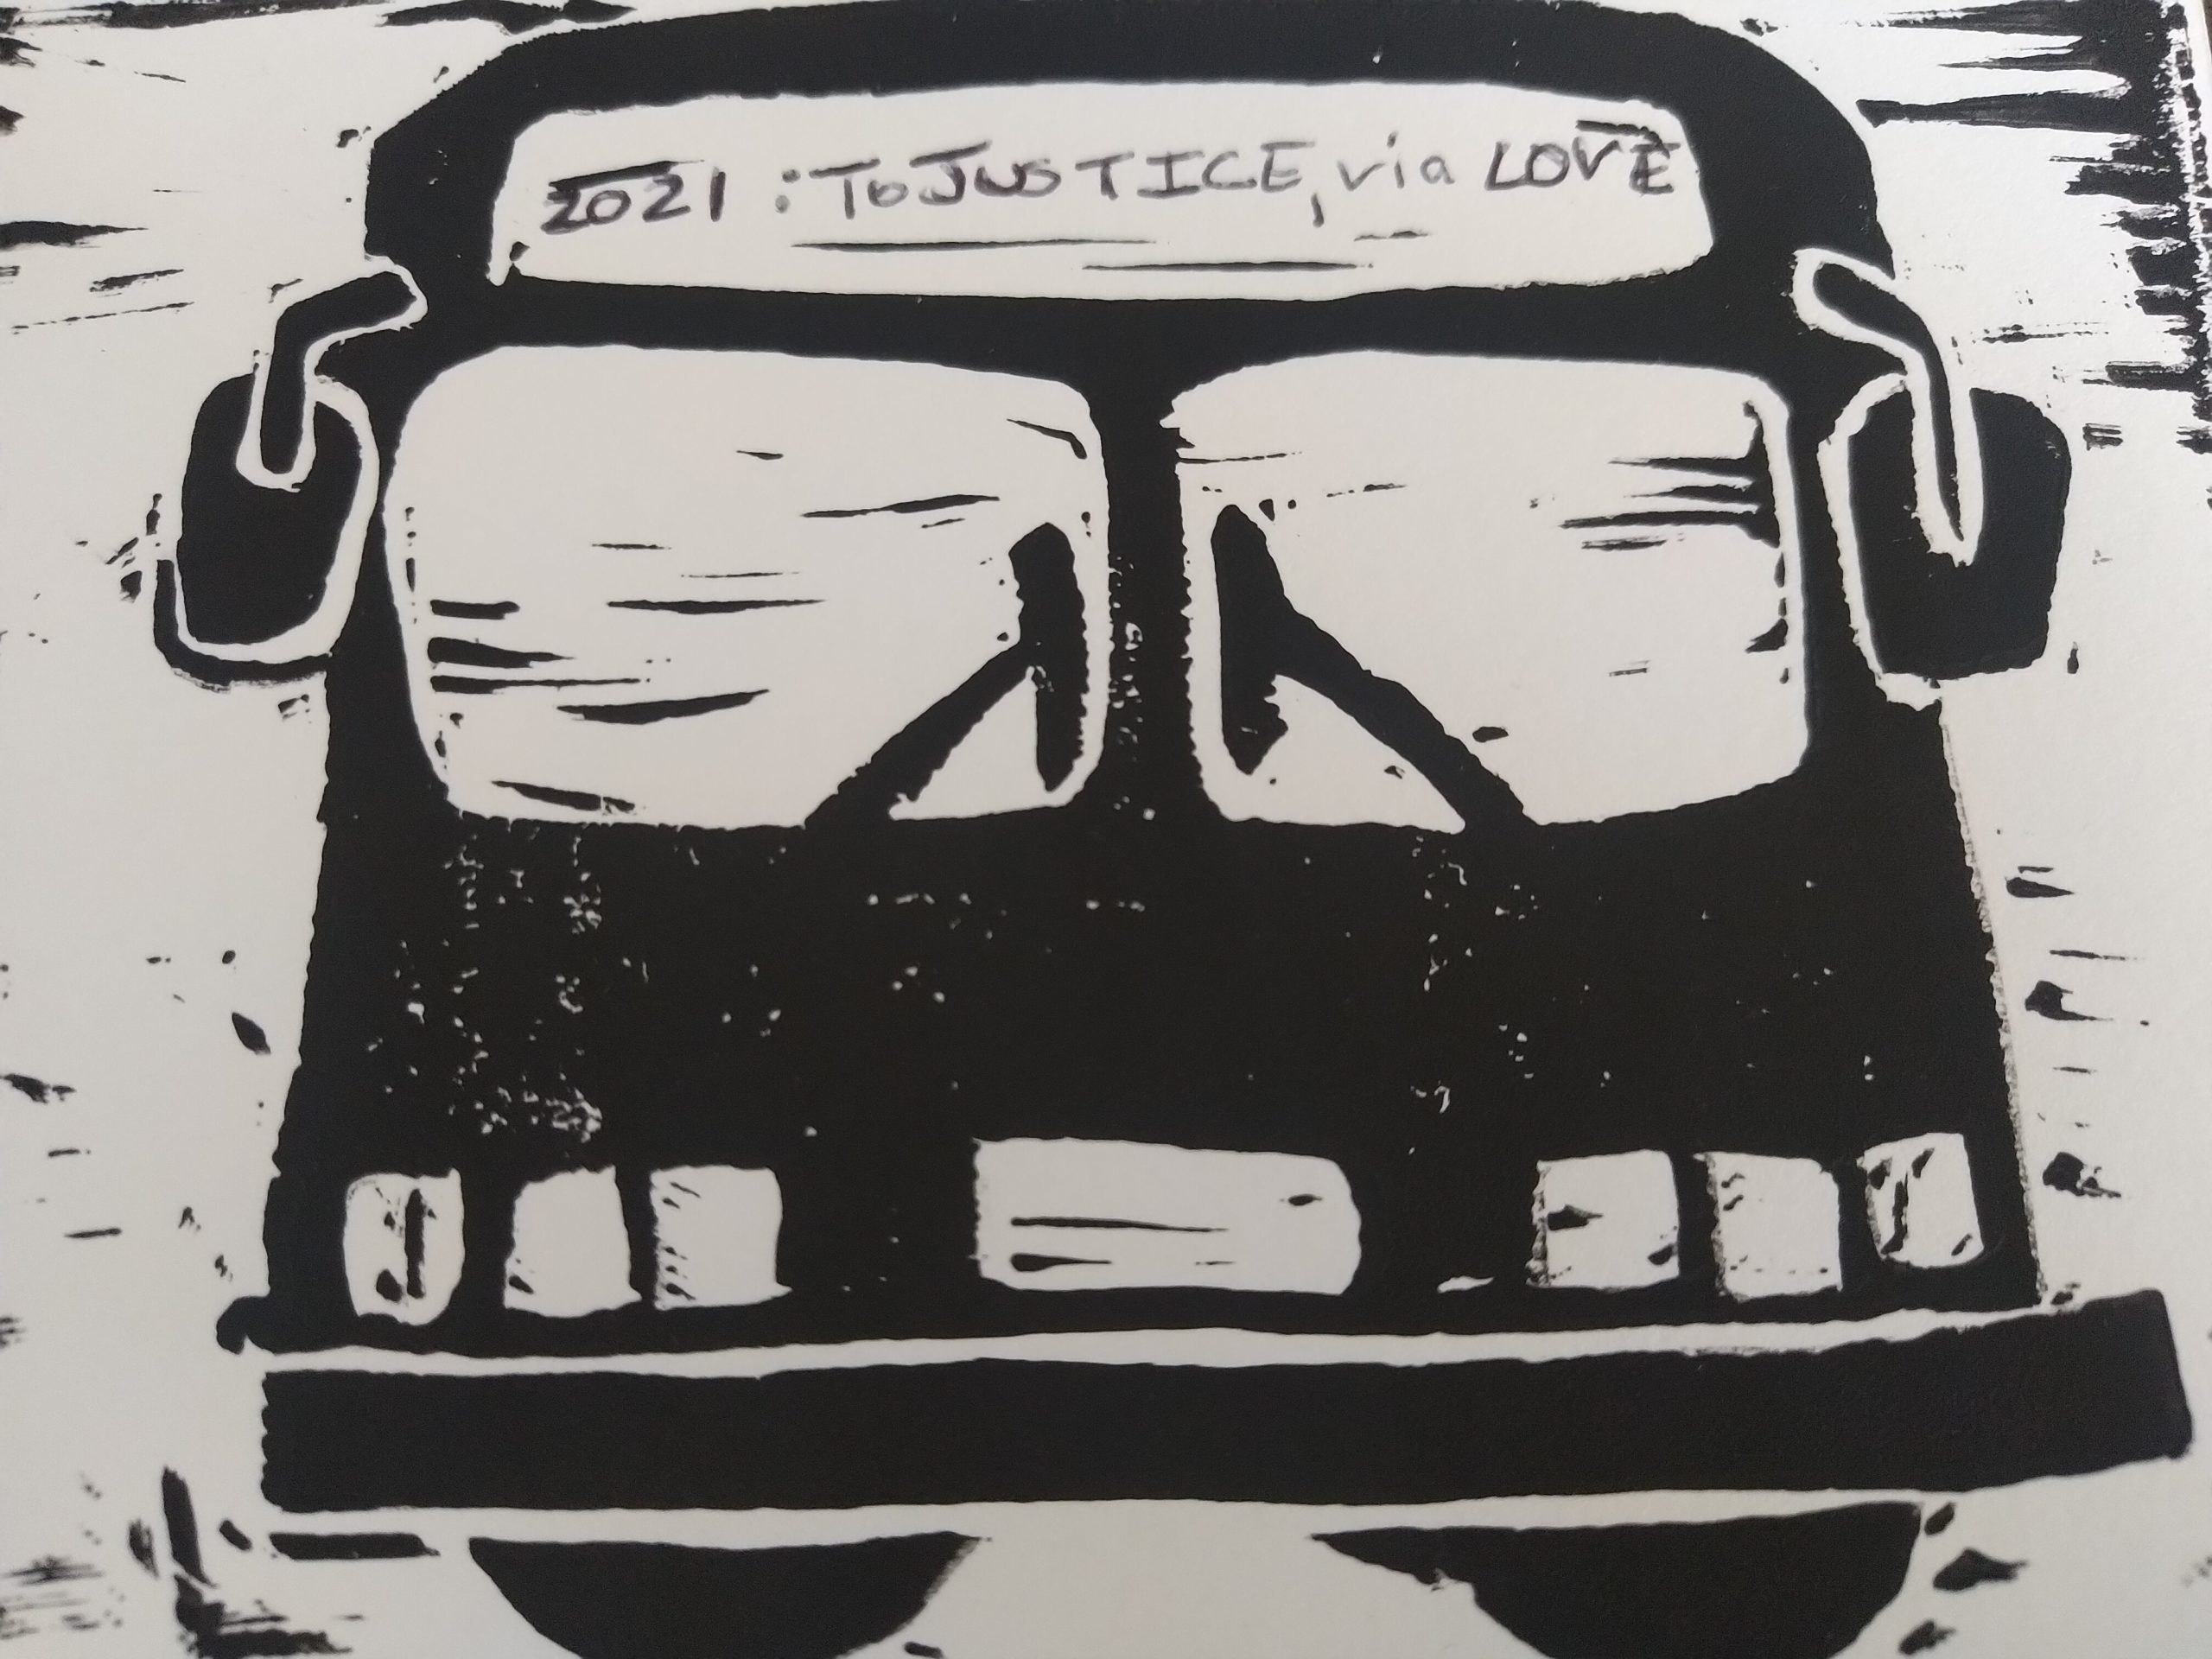 "Image description: A black and white block print of a bus. In the area for the route number and destination is the text, ""2021: To Justice, via LOVE."""